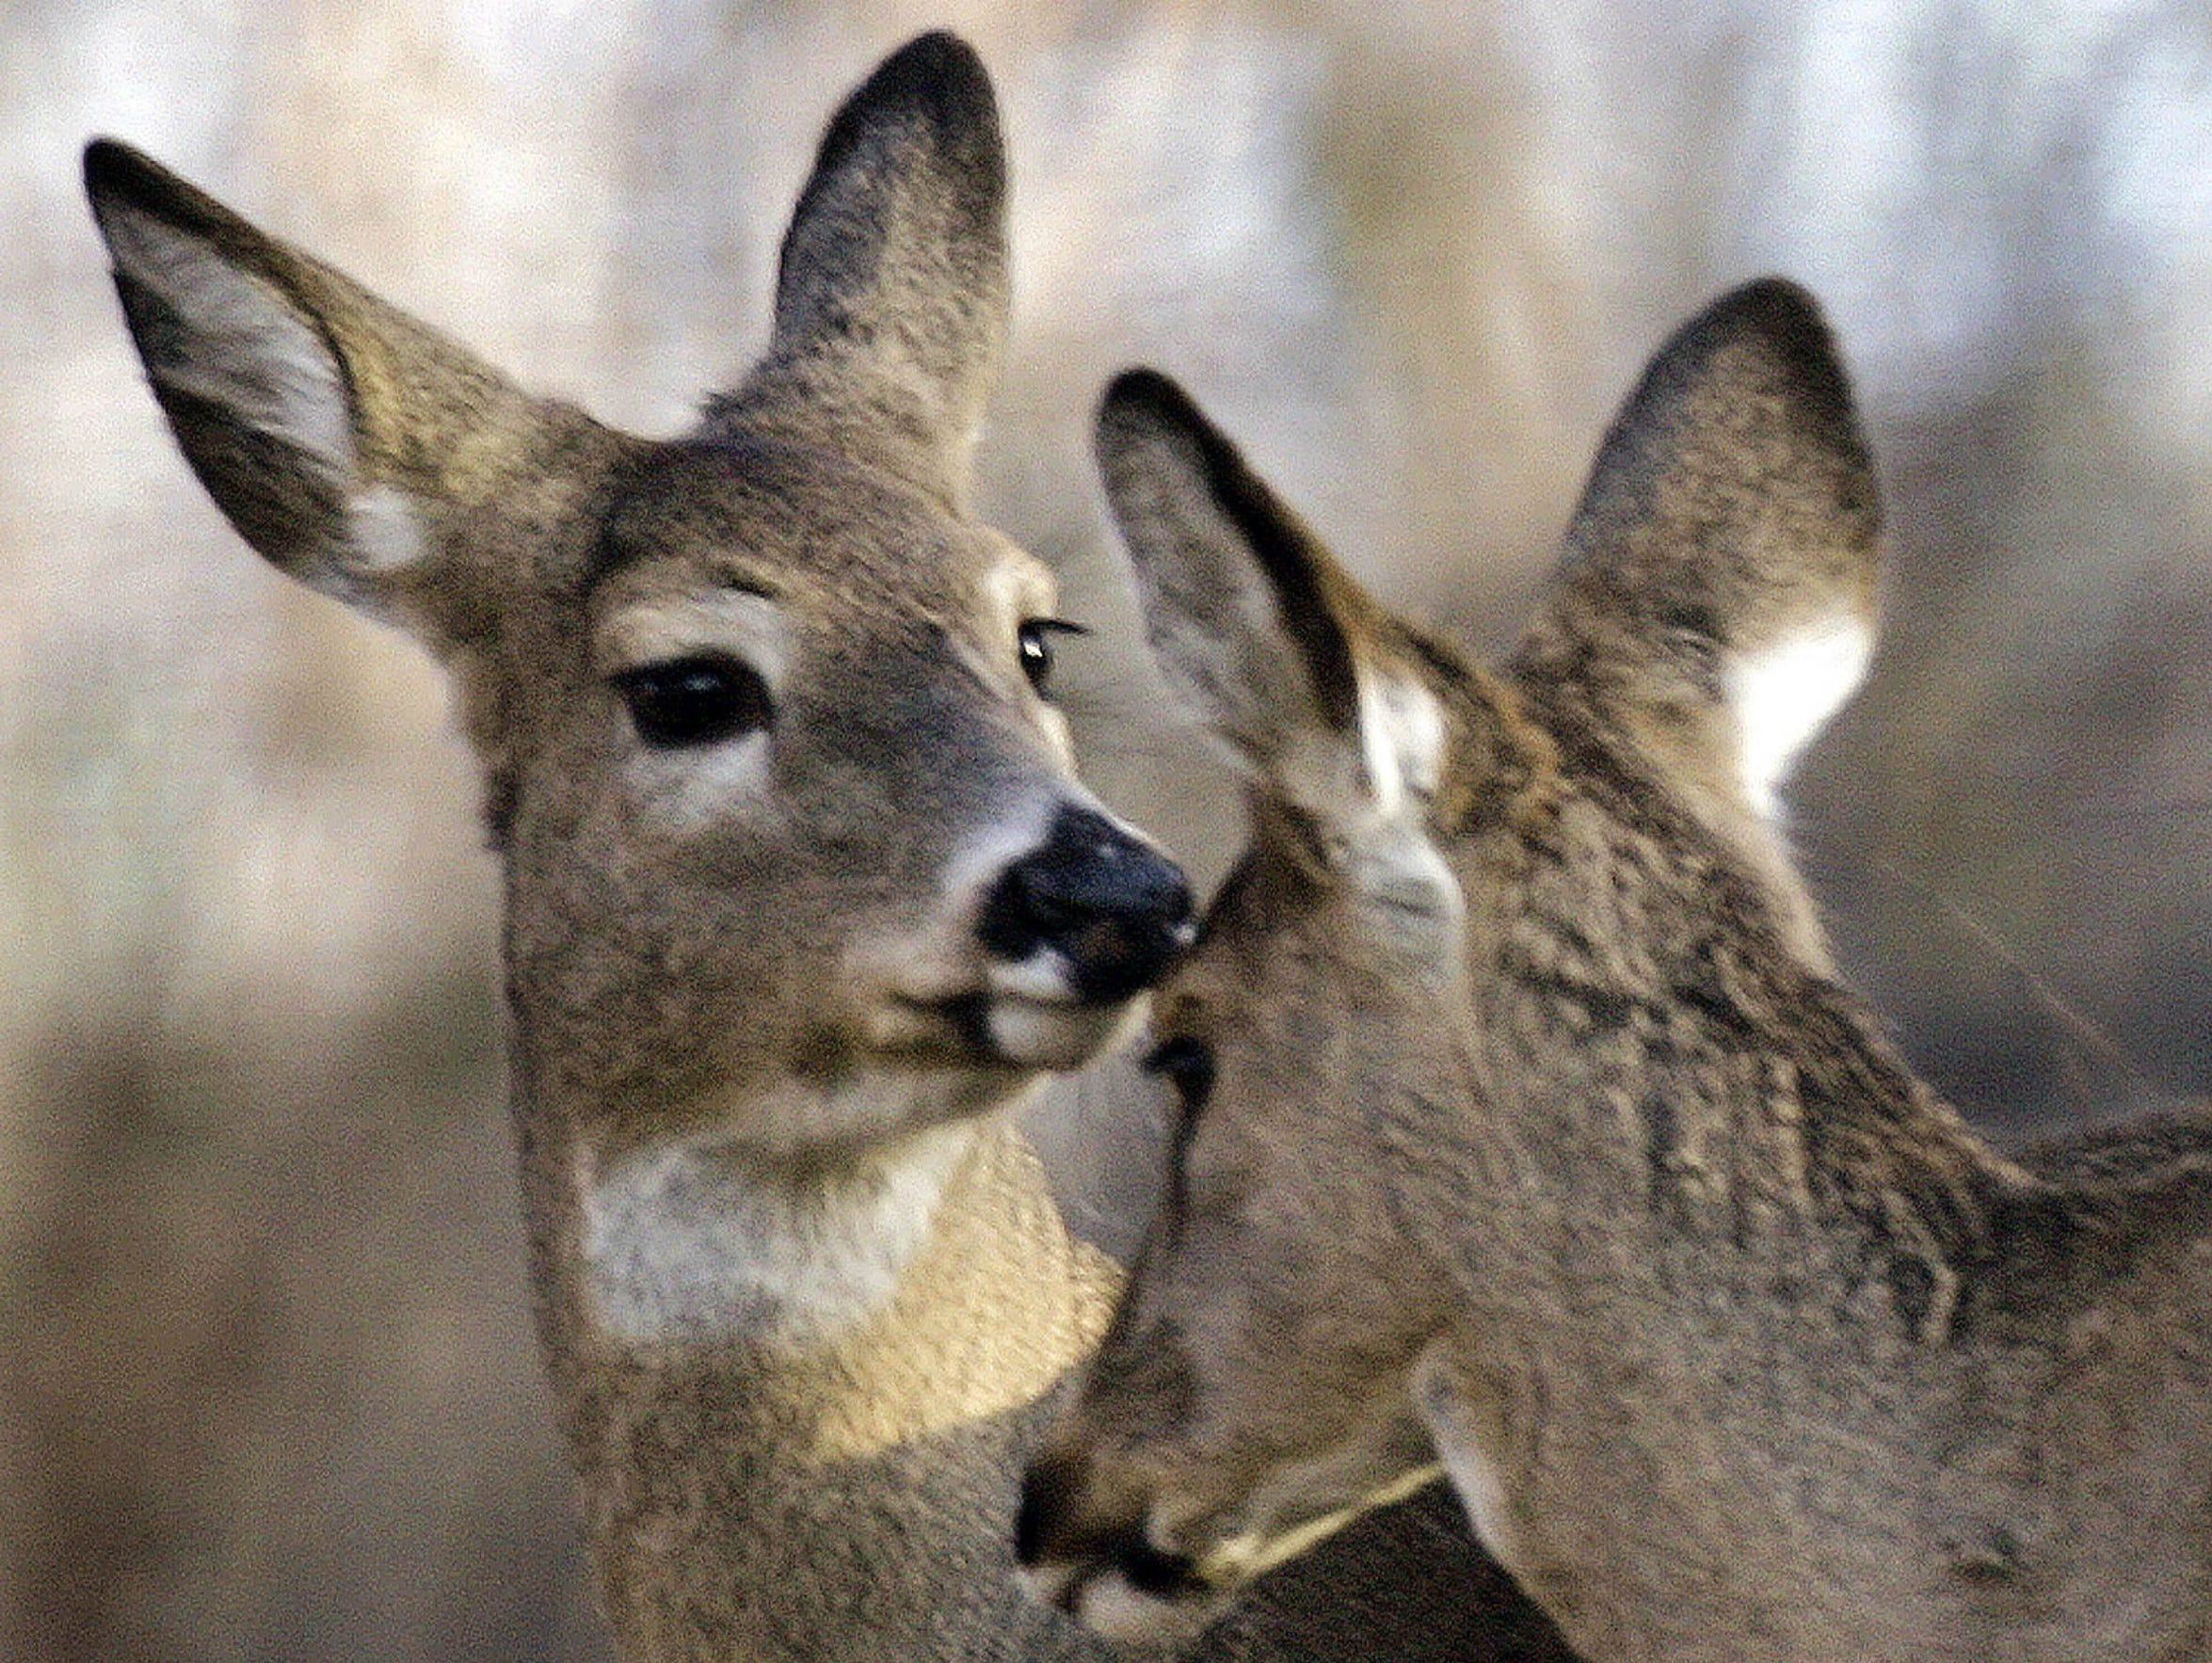 Chronic wasting disease is a threat to the Michigan